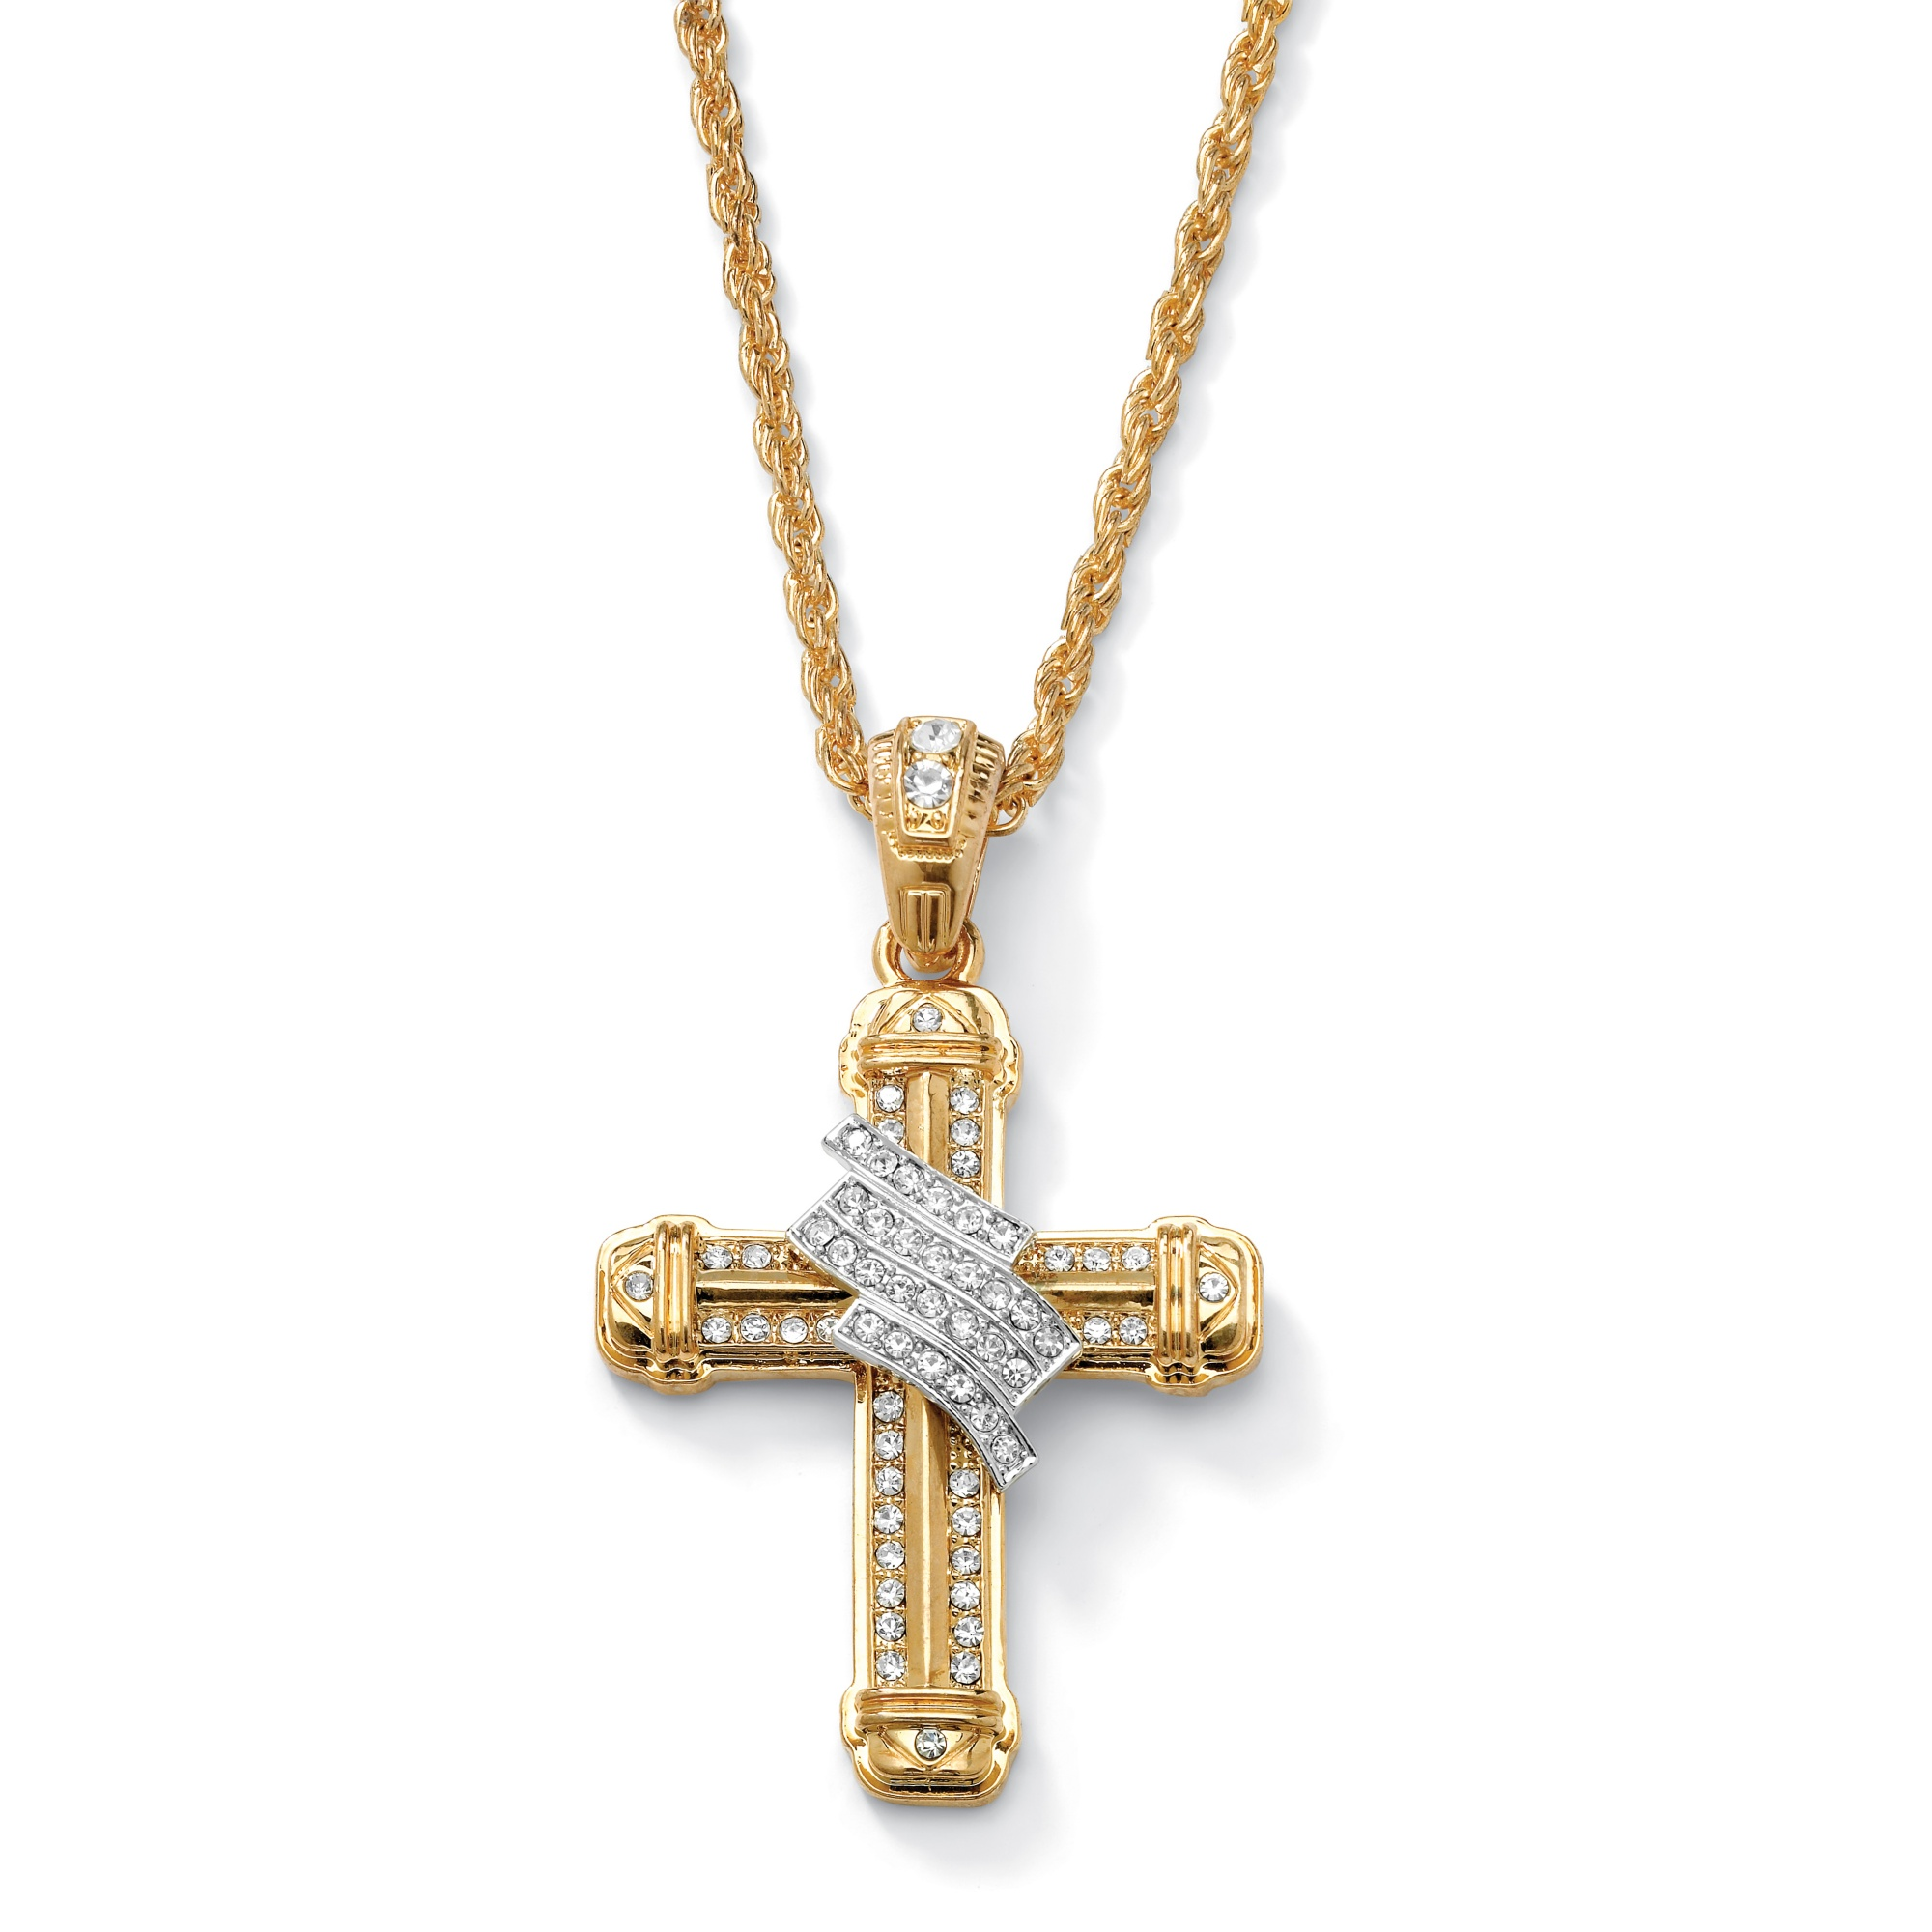 cubic jewelry rhodium products karat popular jesus cz gold christianity square yellow pave iced zirconium pendant ice icy out micropave cross zirconia